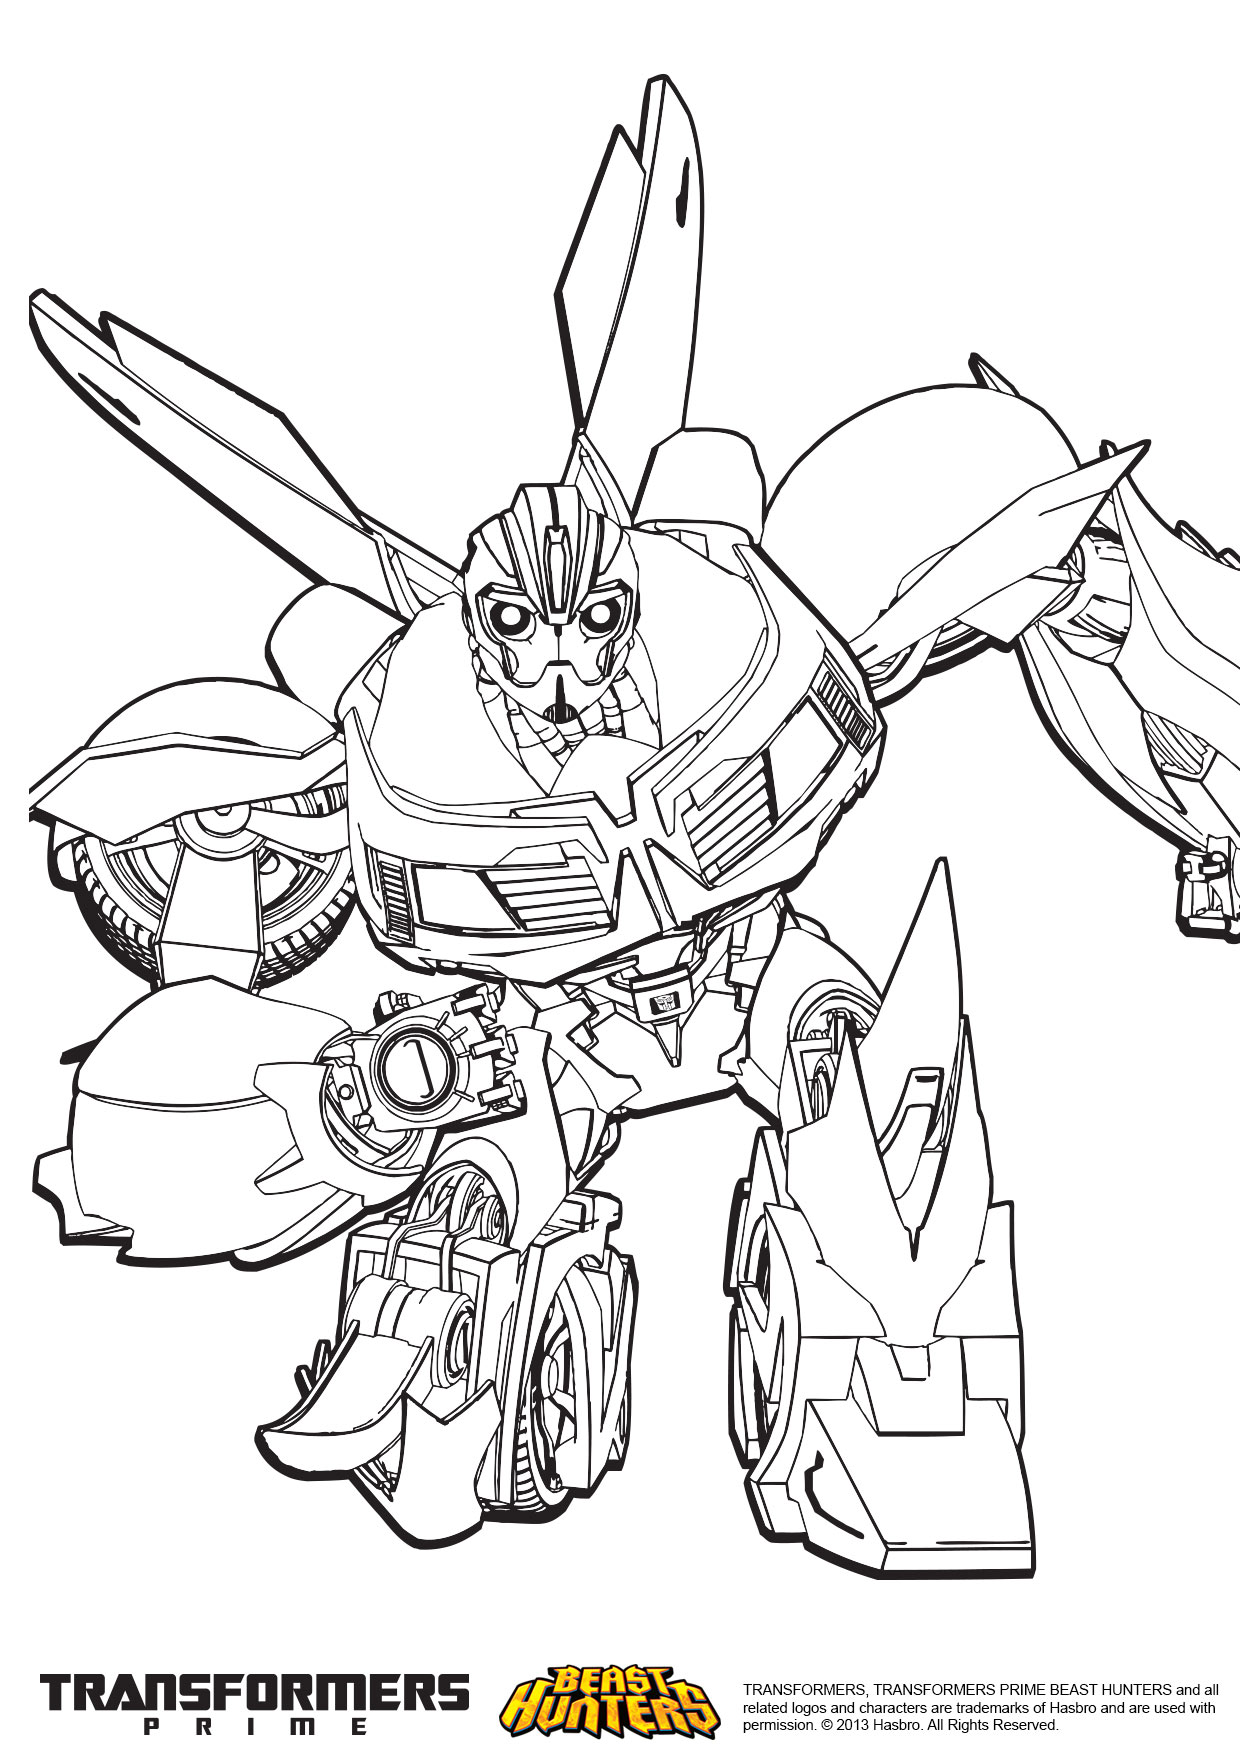 transformers prime beast hunters coloring pages pin transformers coloriages dessin tattoo on pinterest